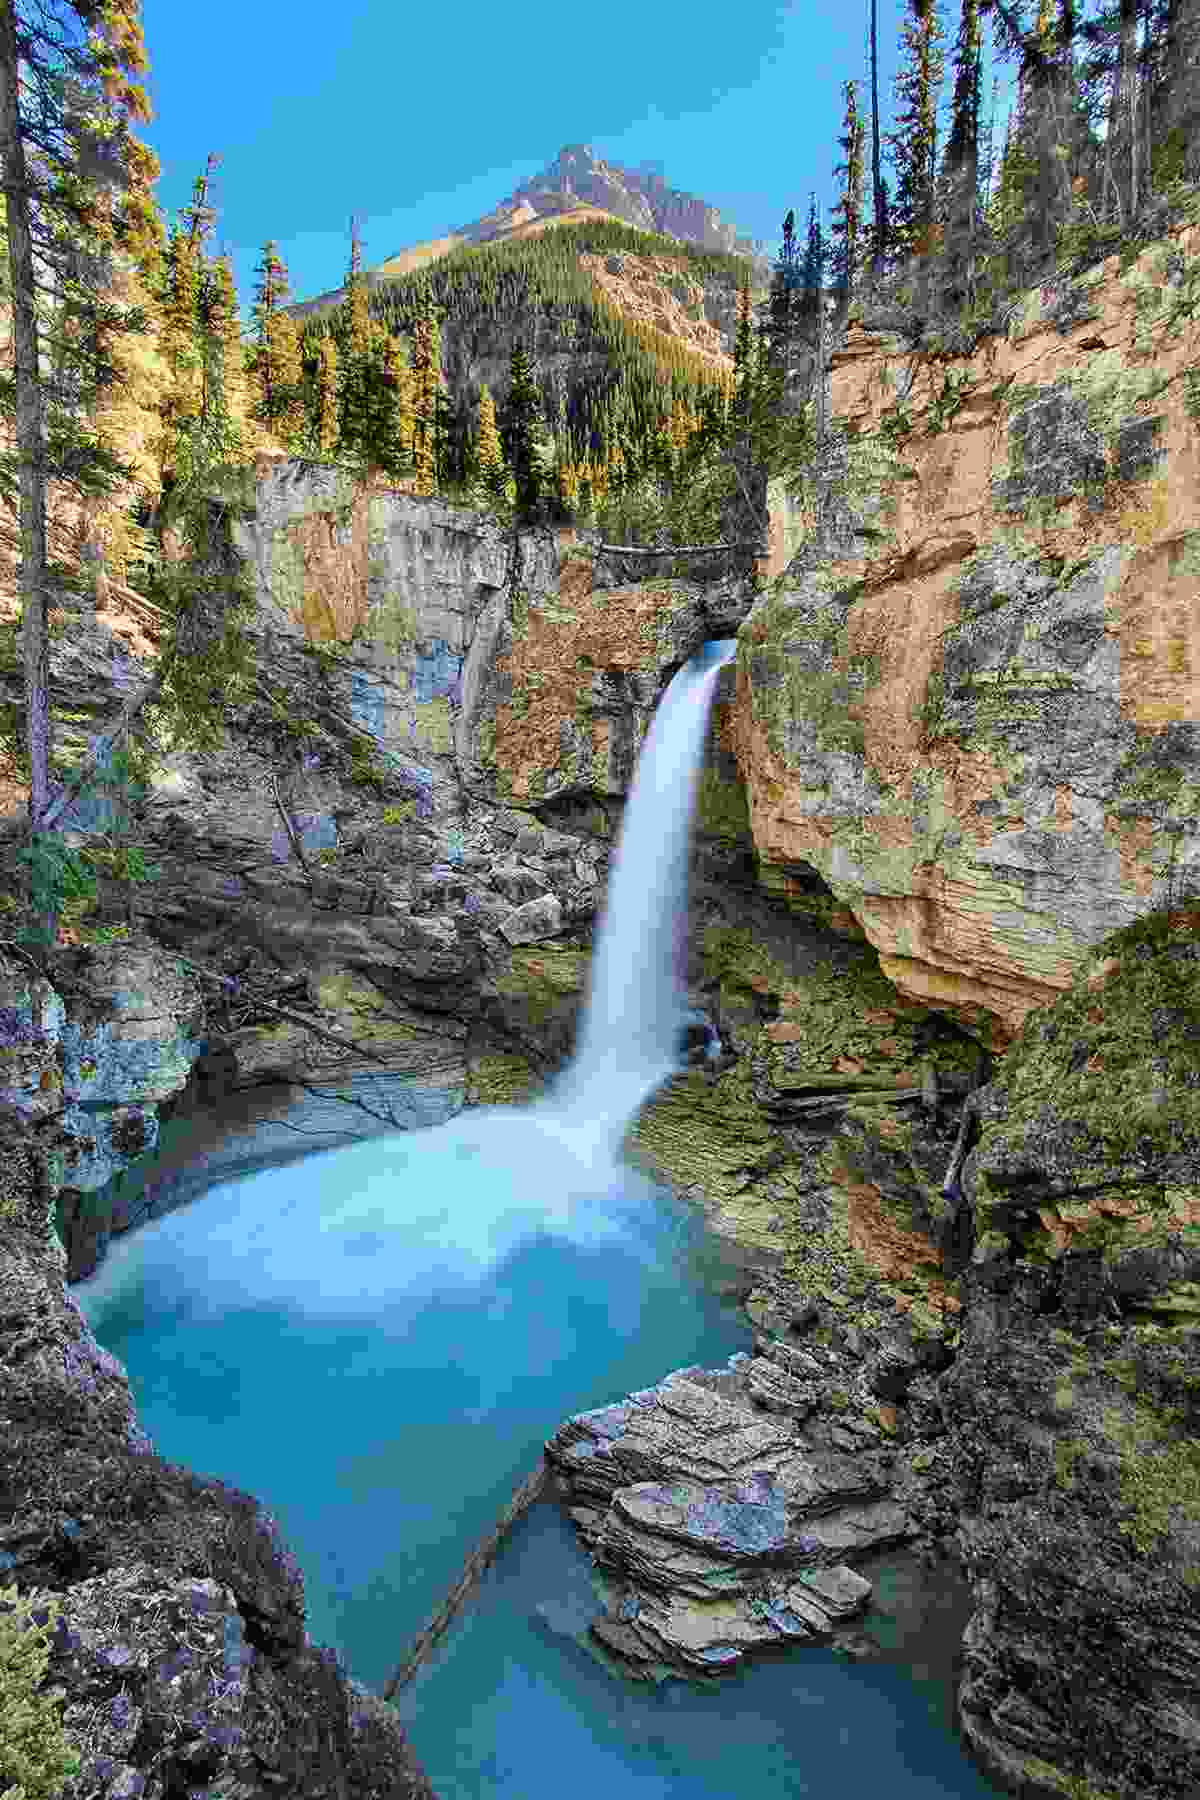 Stanley Falls in Beauty Creek Canyon (Shutterstock)